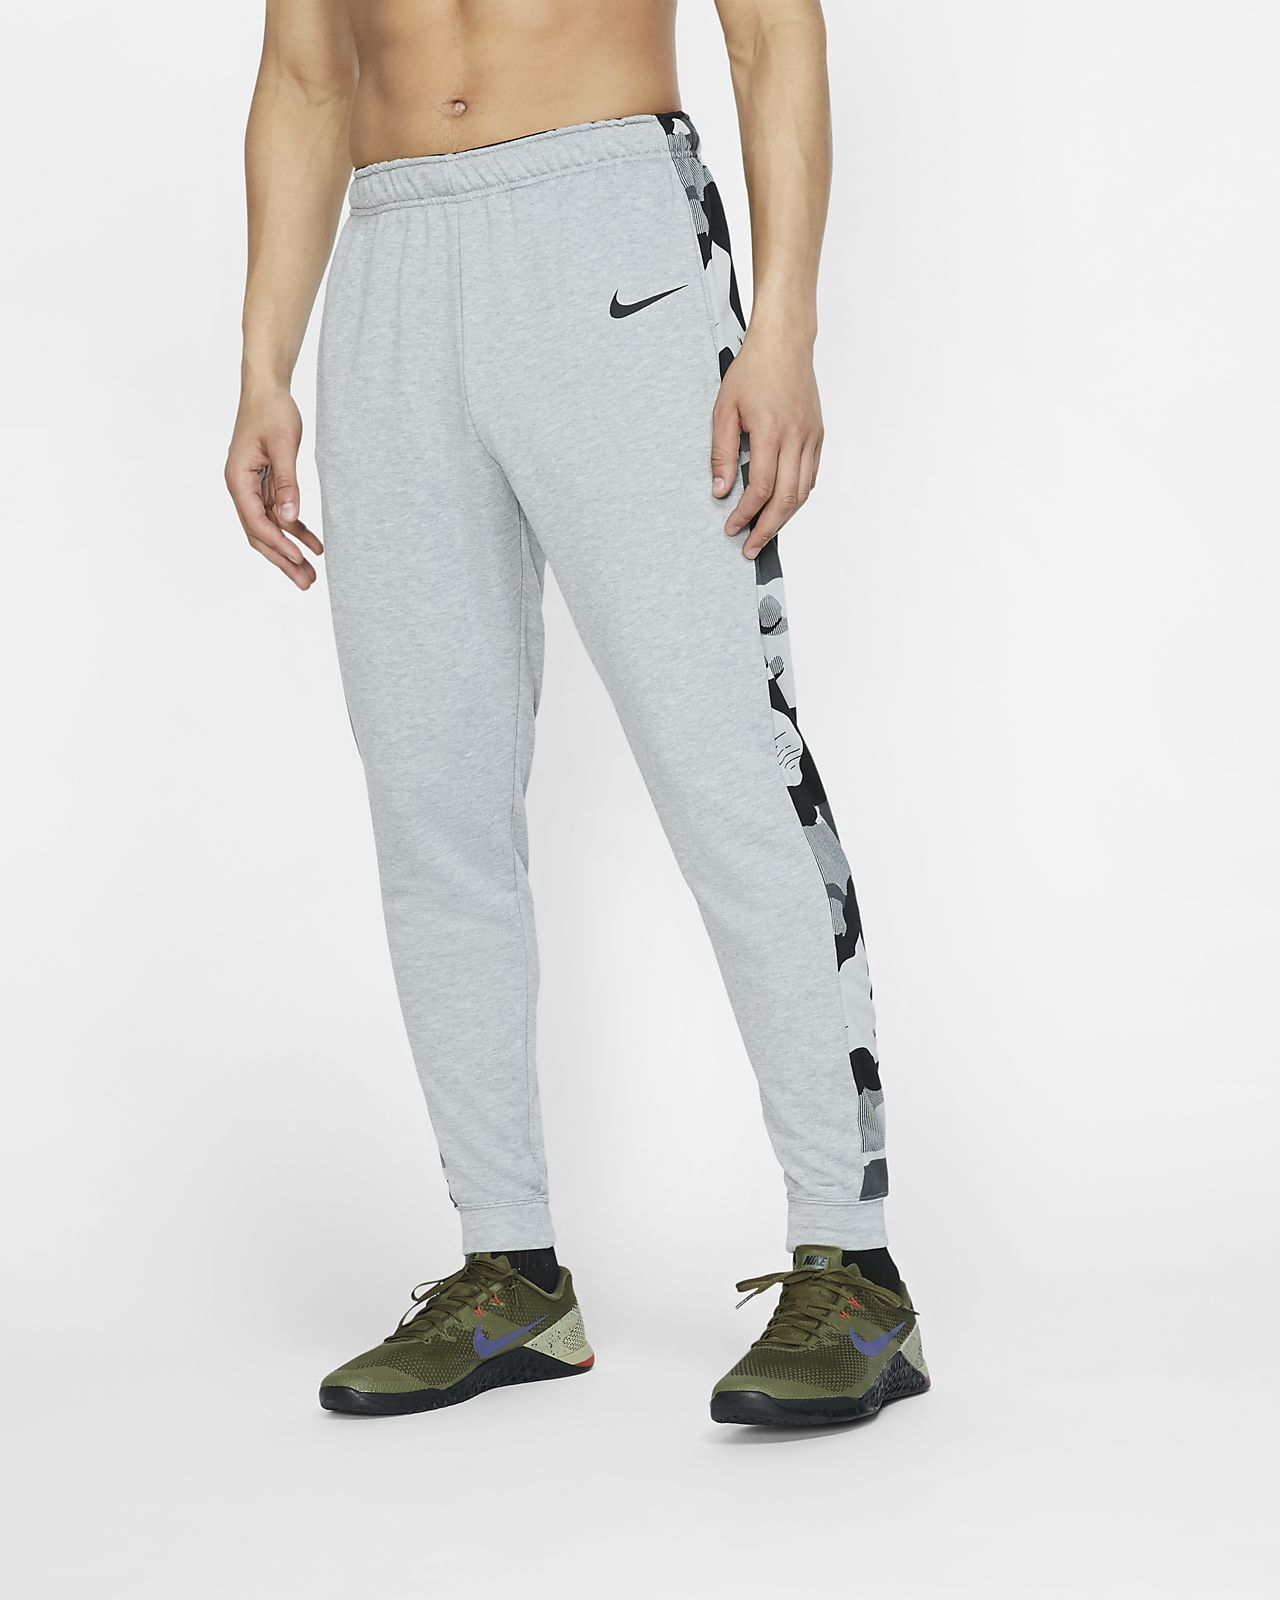 Nike Dri FIT Men's Tapered Fleece Training Trousers